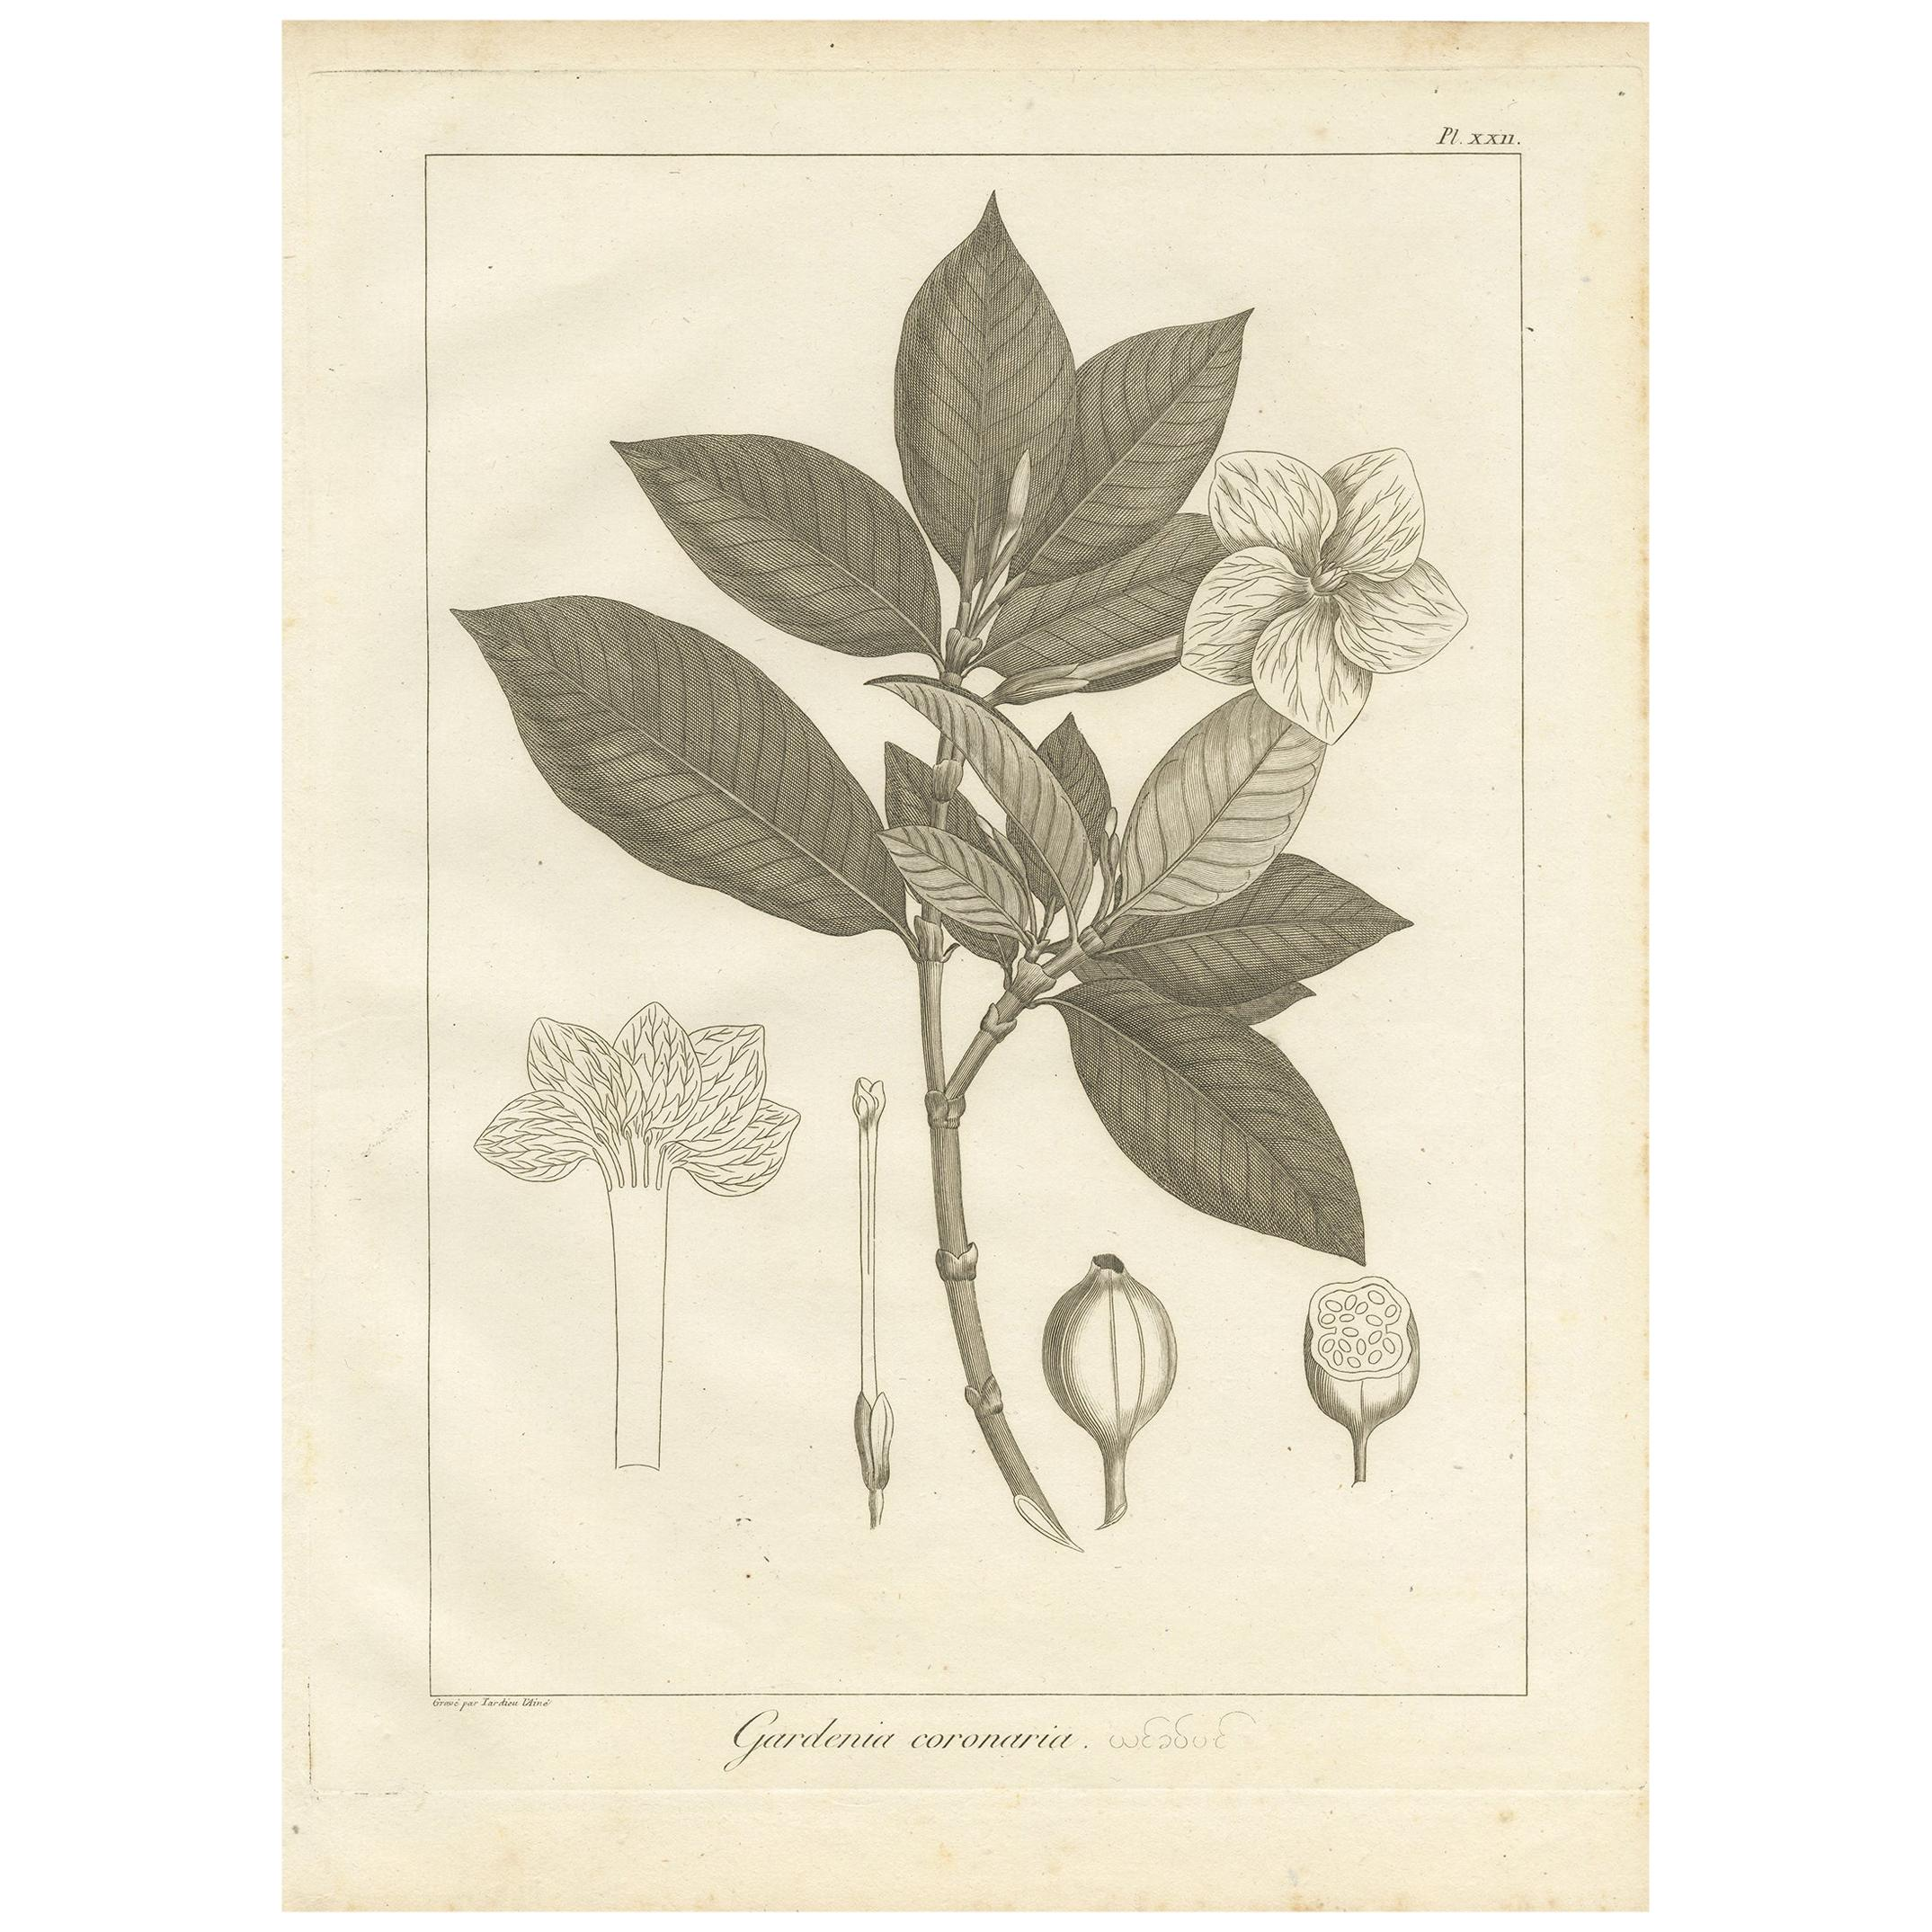 Antique Print of the Crown Gardenia Plant by Symes, '1800'